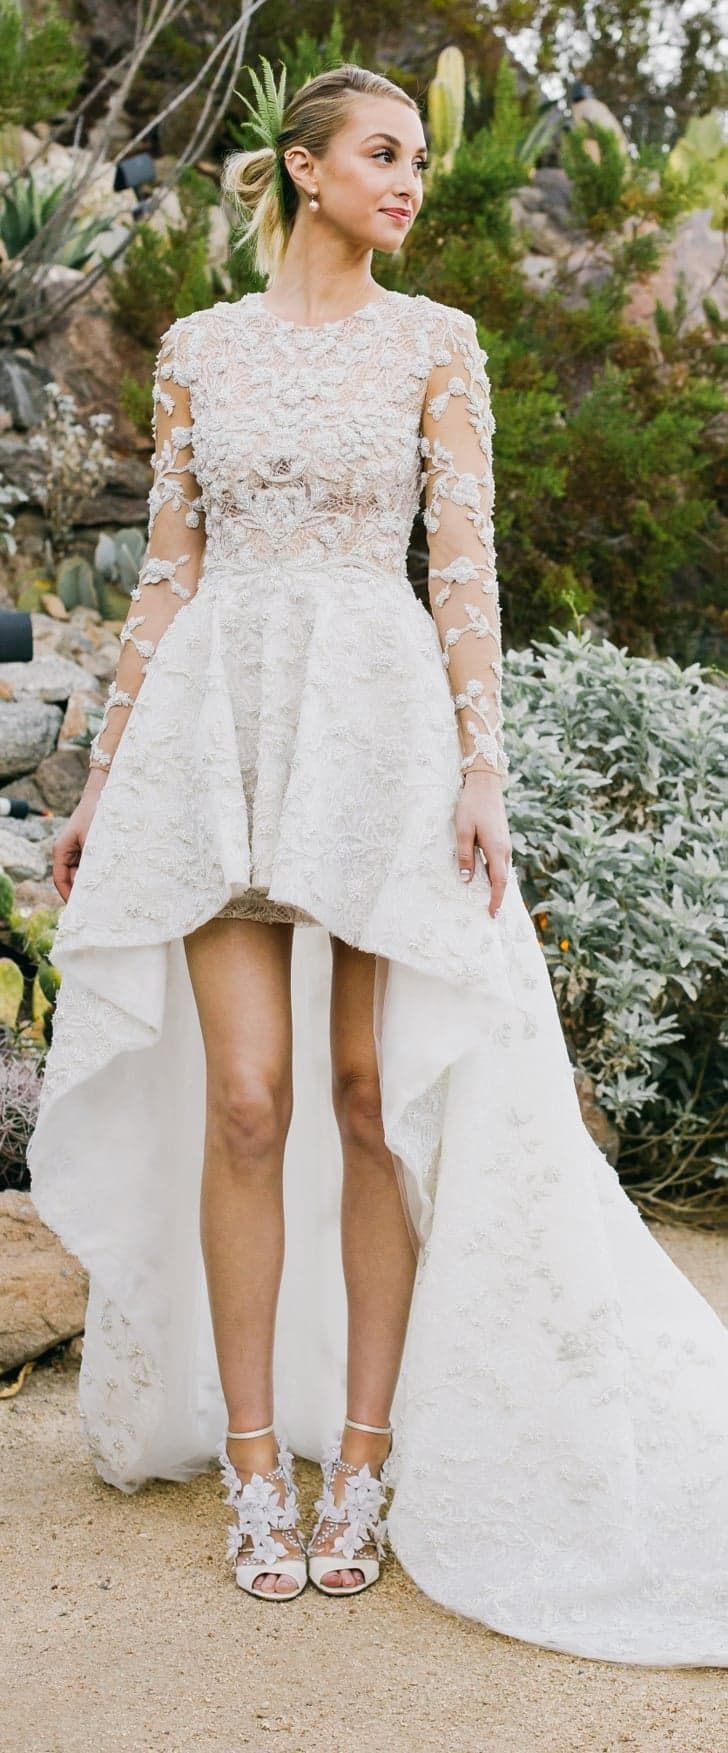 Whitney Port's Wedding Gown Is Just What You'd Expect —Until You See the Bottom